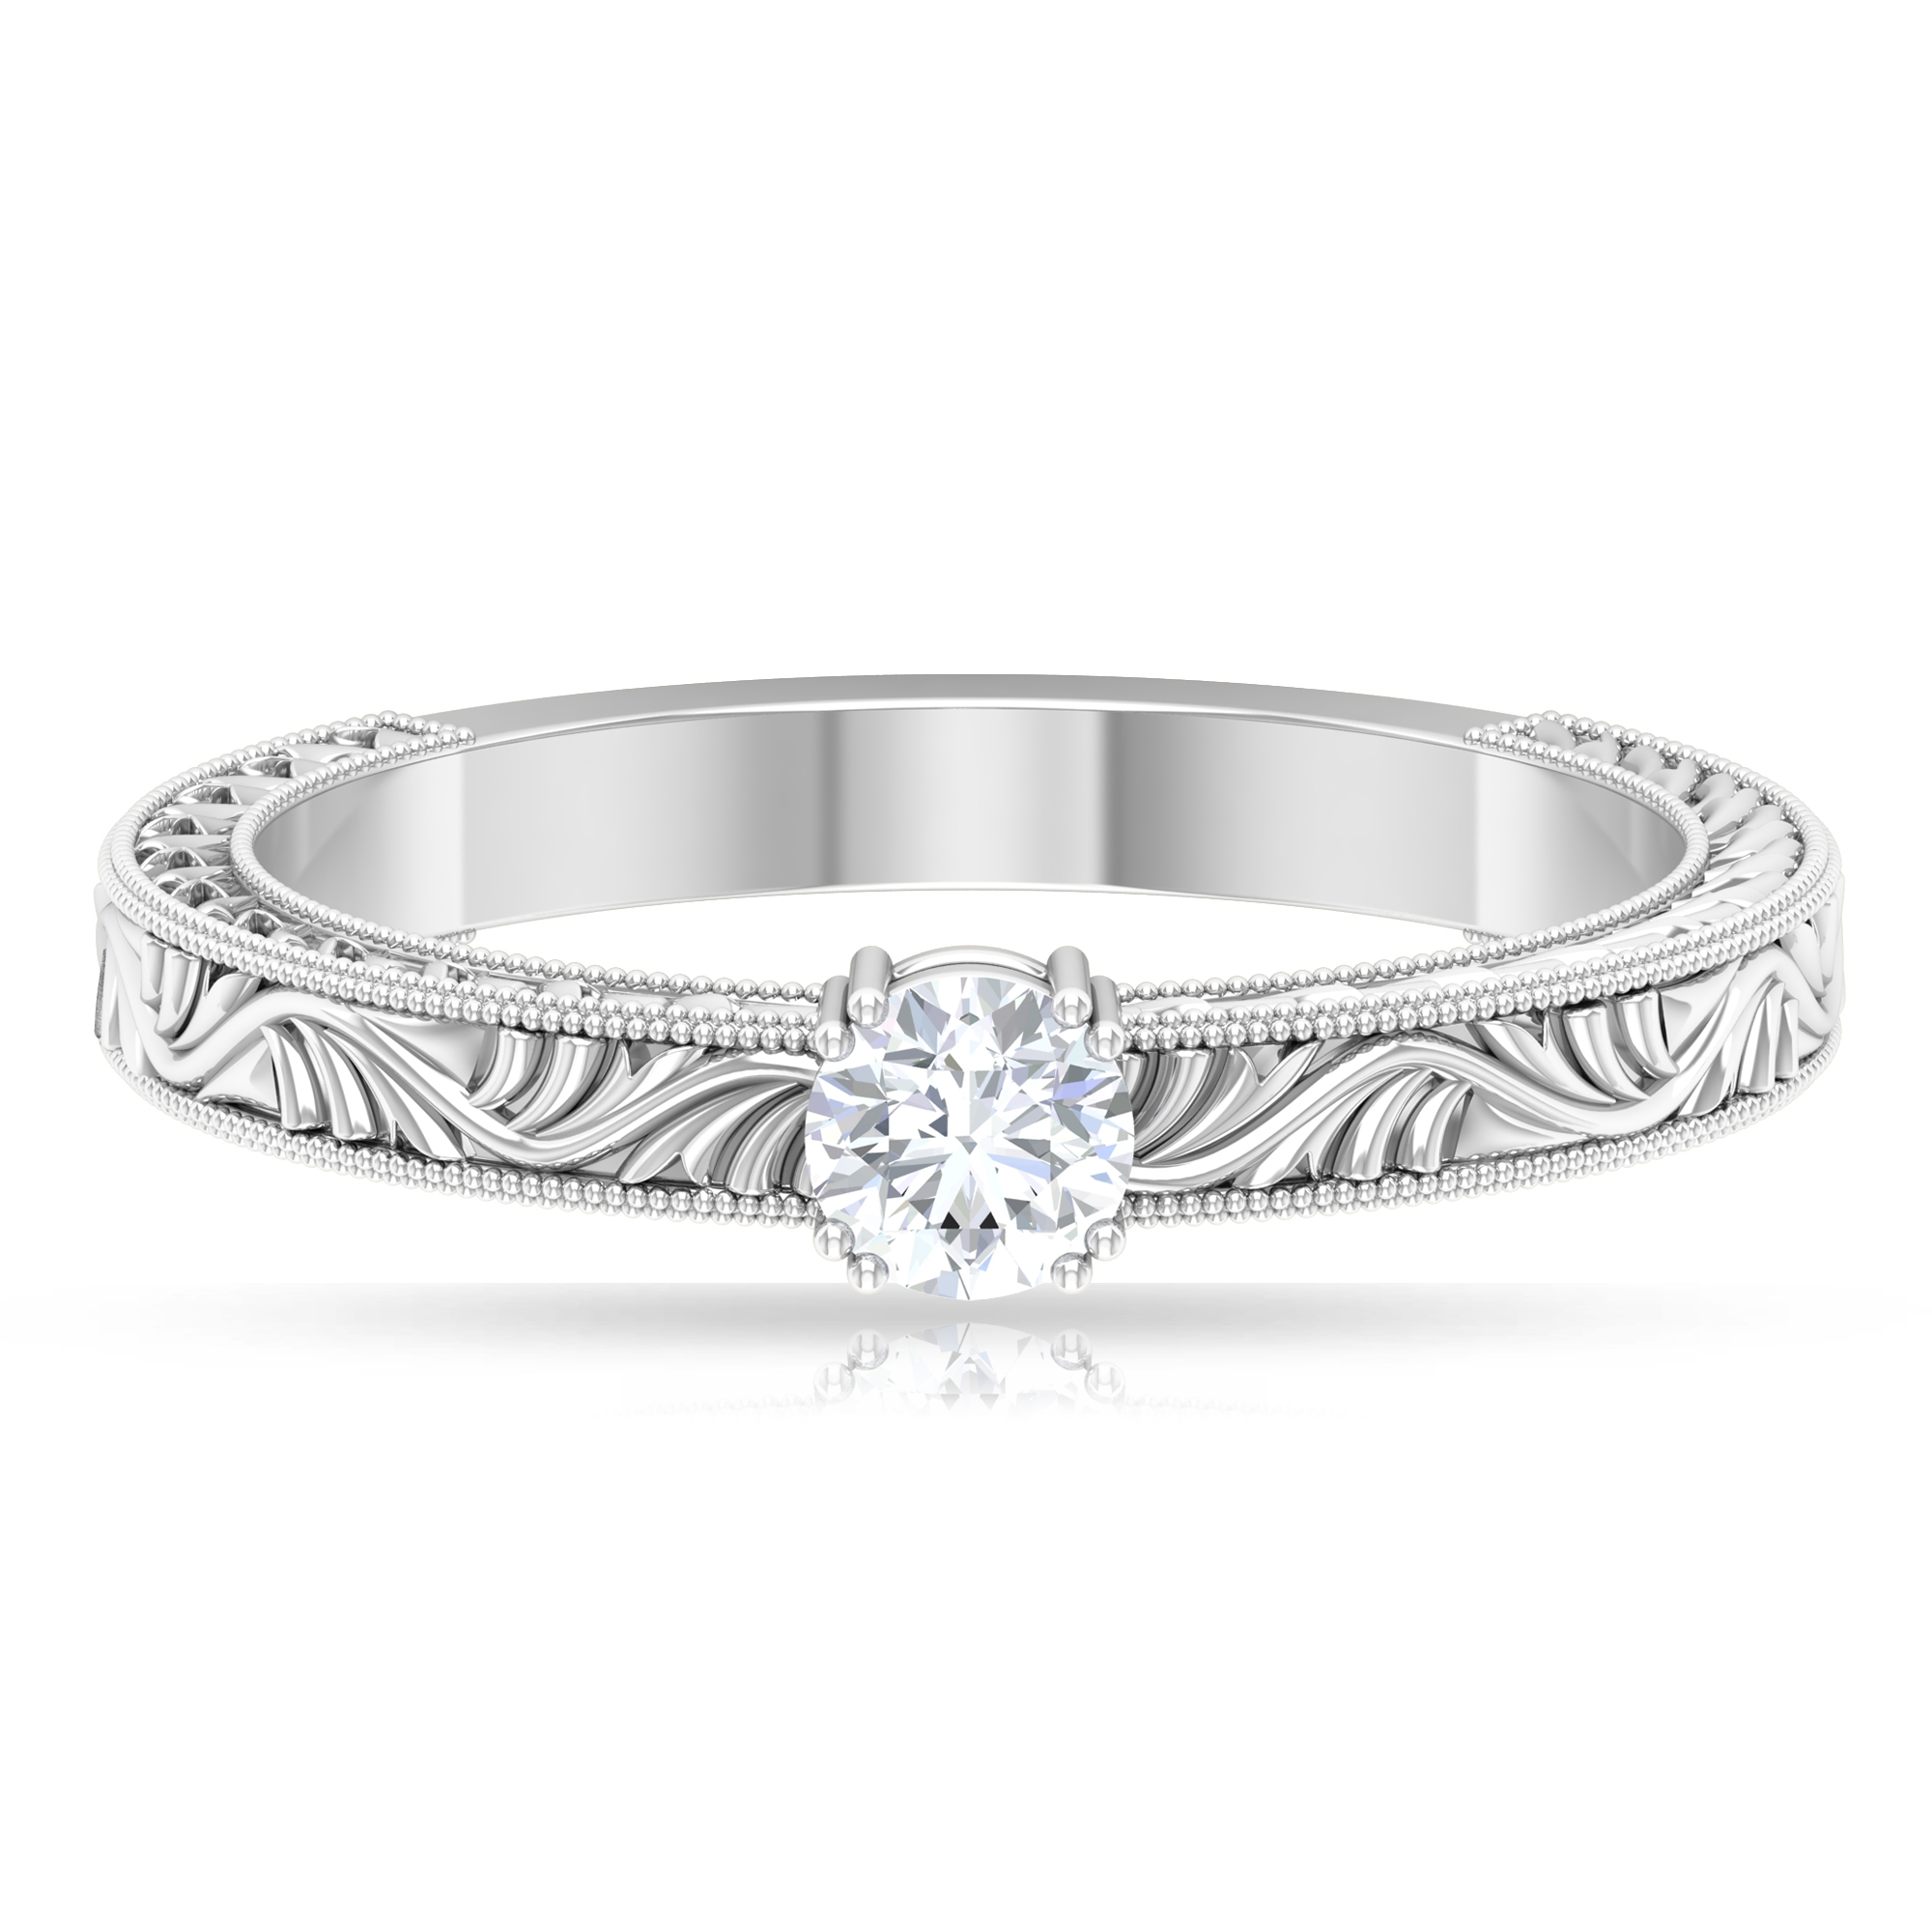 4 MM Round Cut Diamond Solitaire Ring in Double Prong Setting with Engraved Details